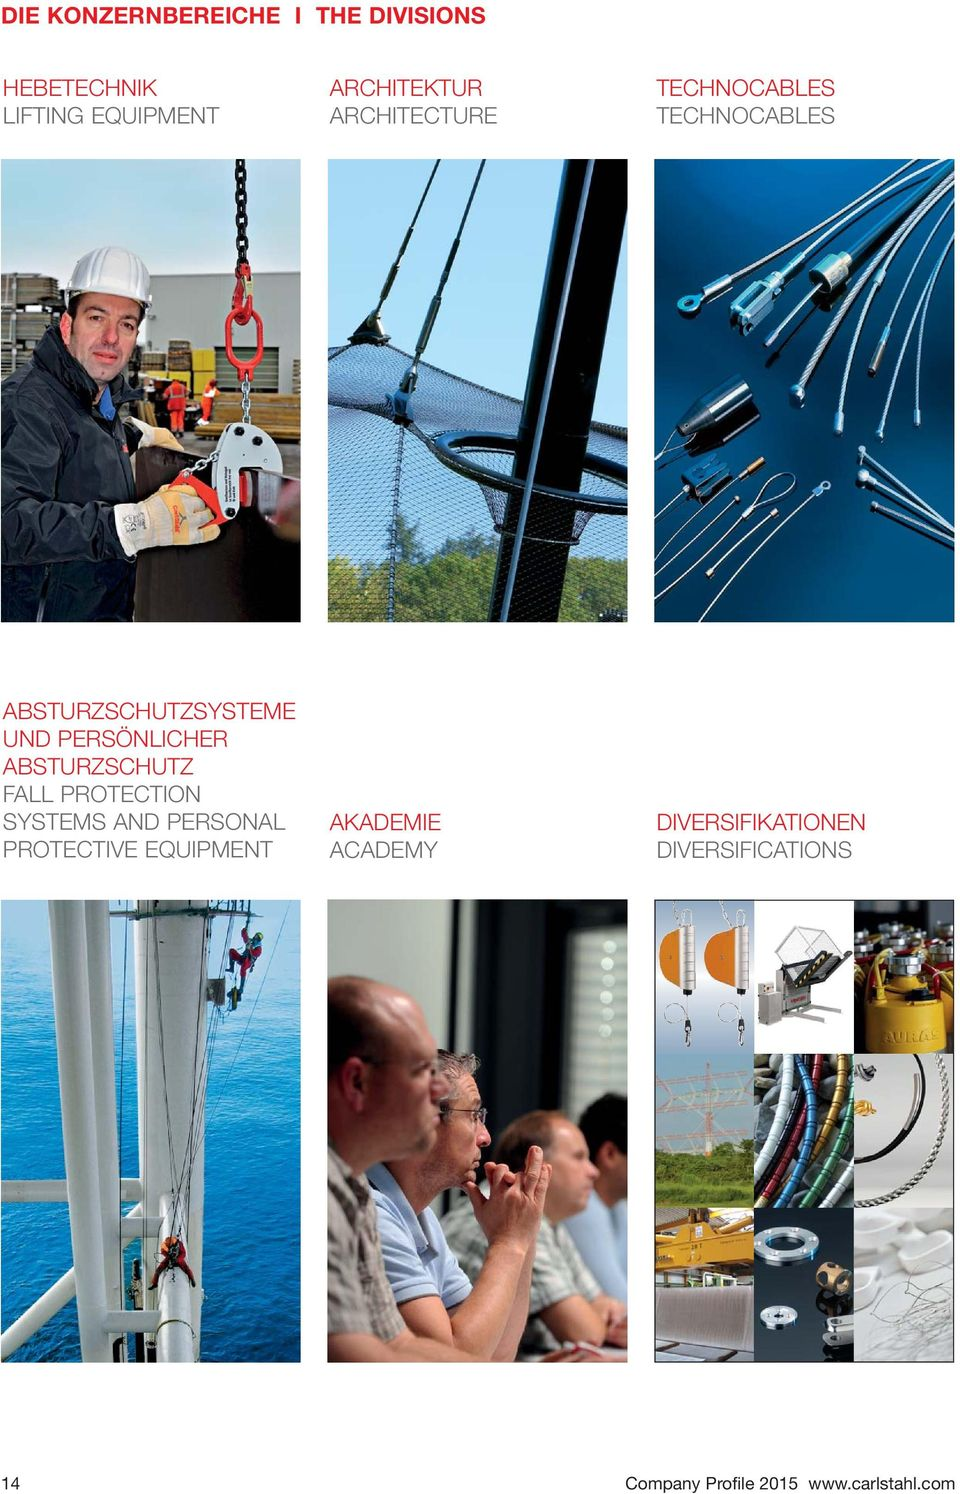 ABSTURZSCHUTZ FALL PROTECTION SYSTEMS AND PERSONAL PROTECTIVE EQUIPMENT